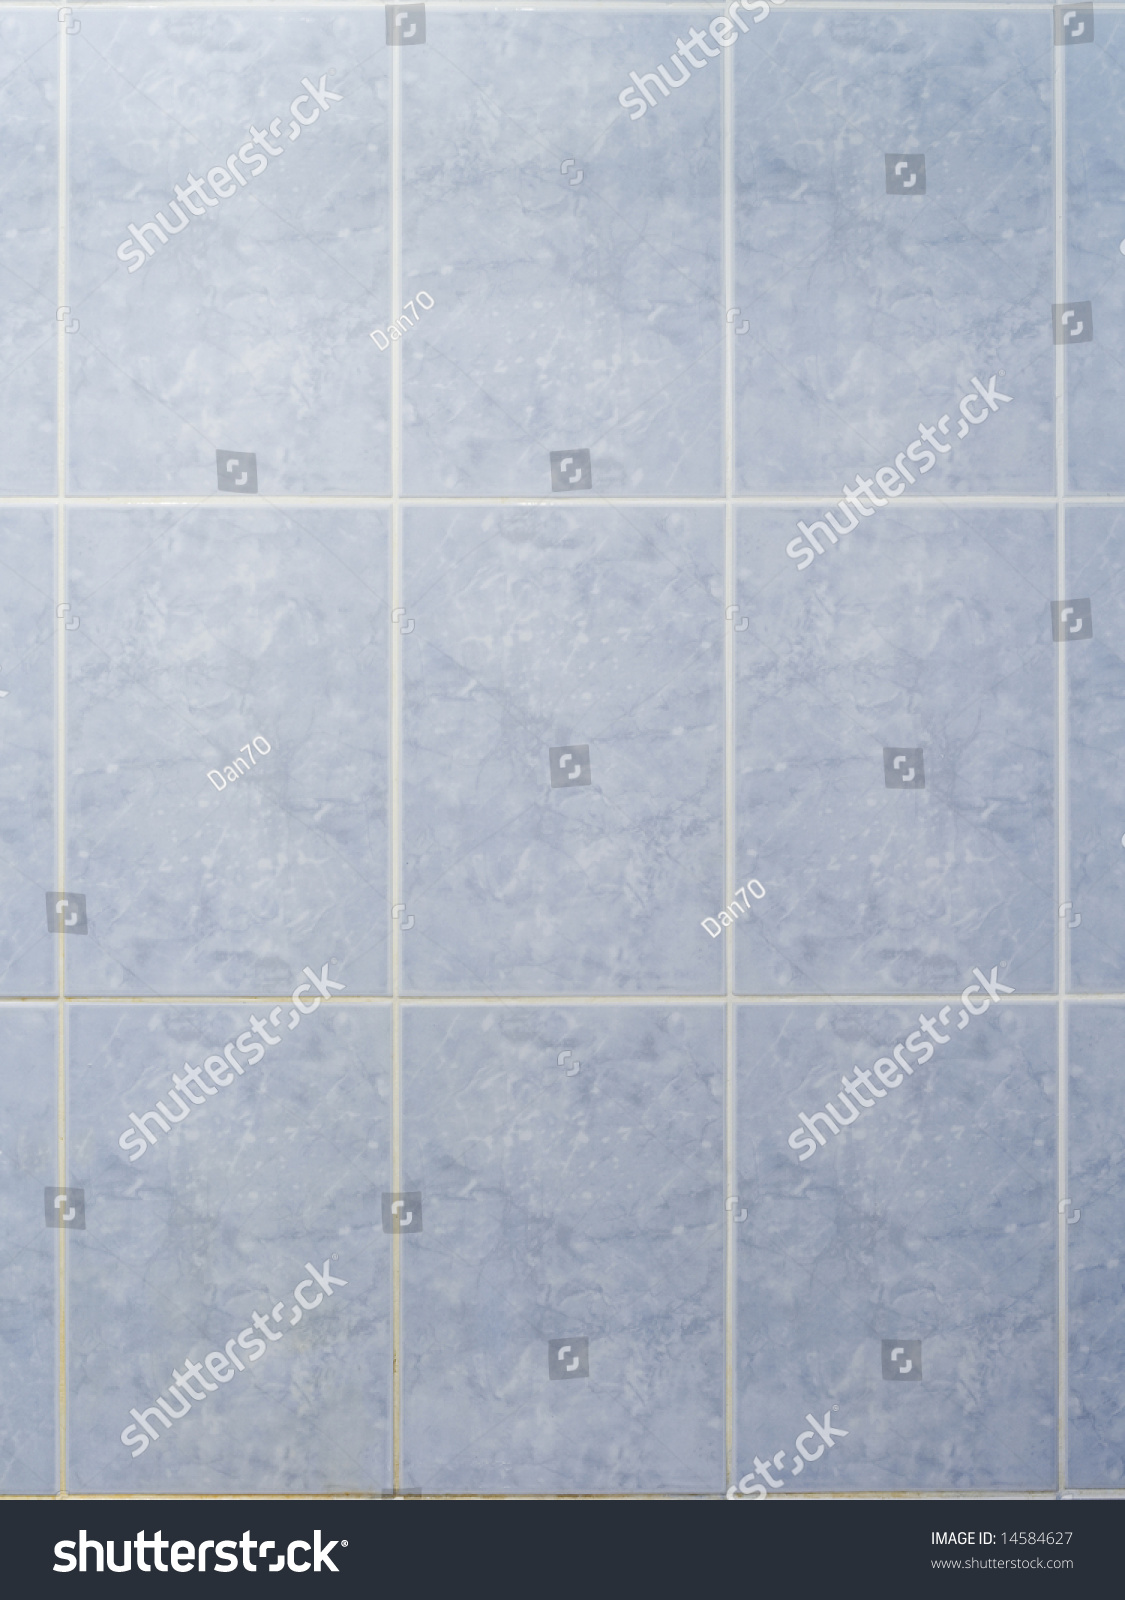 Bathroom Wall Blue Ceramic Tiles Stock Photo (Royalty Free) 14584627 ...